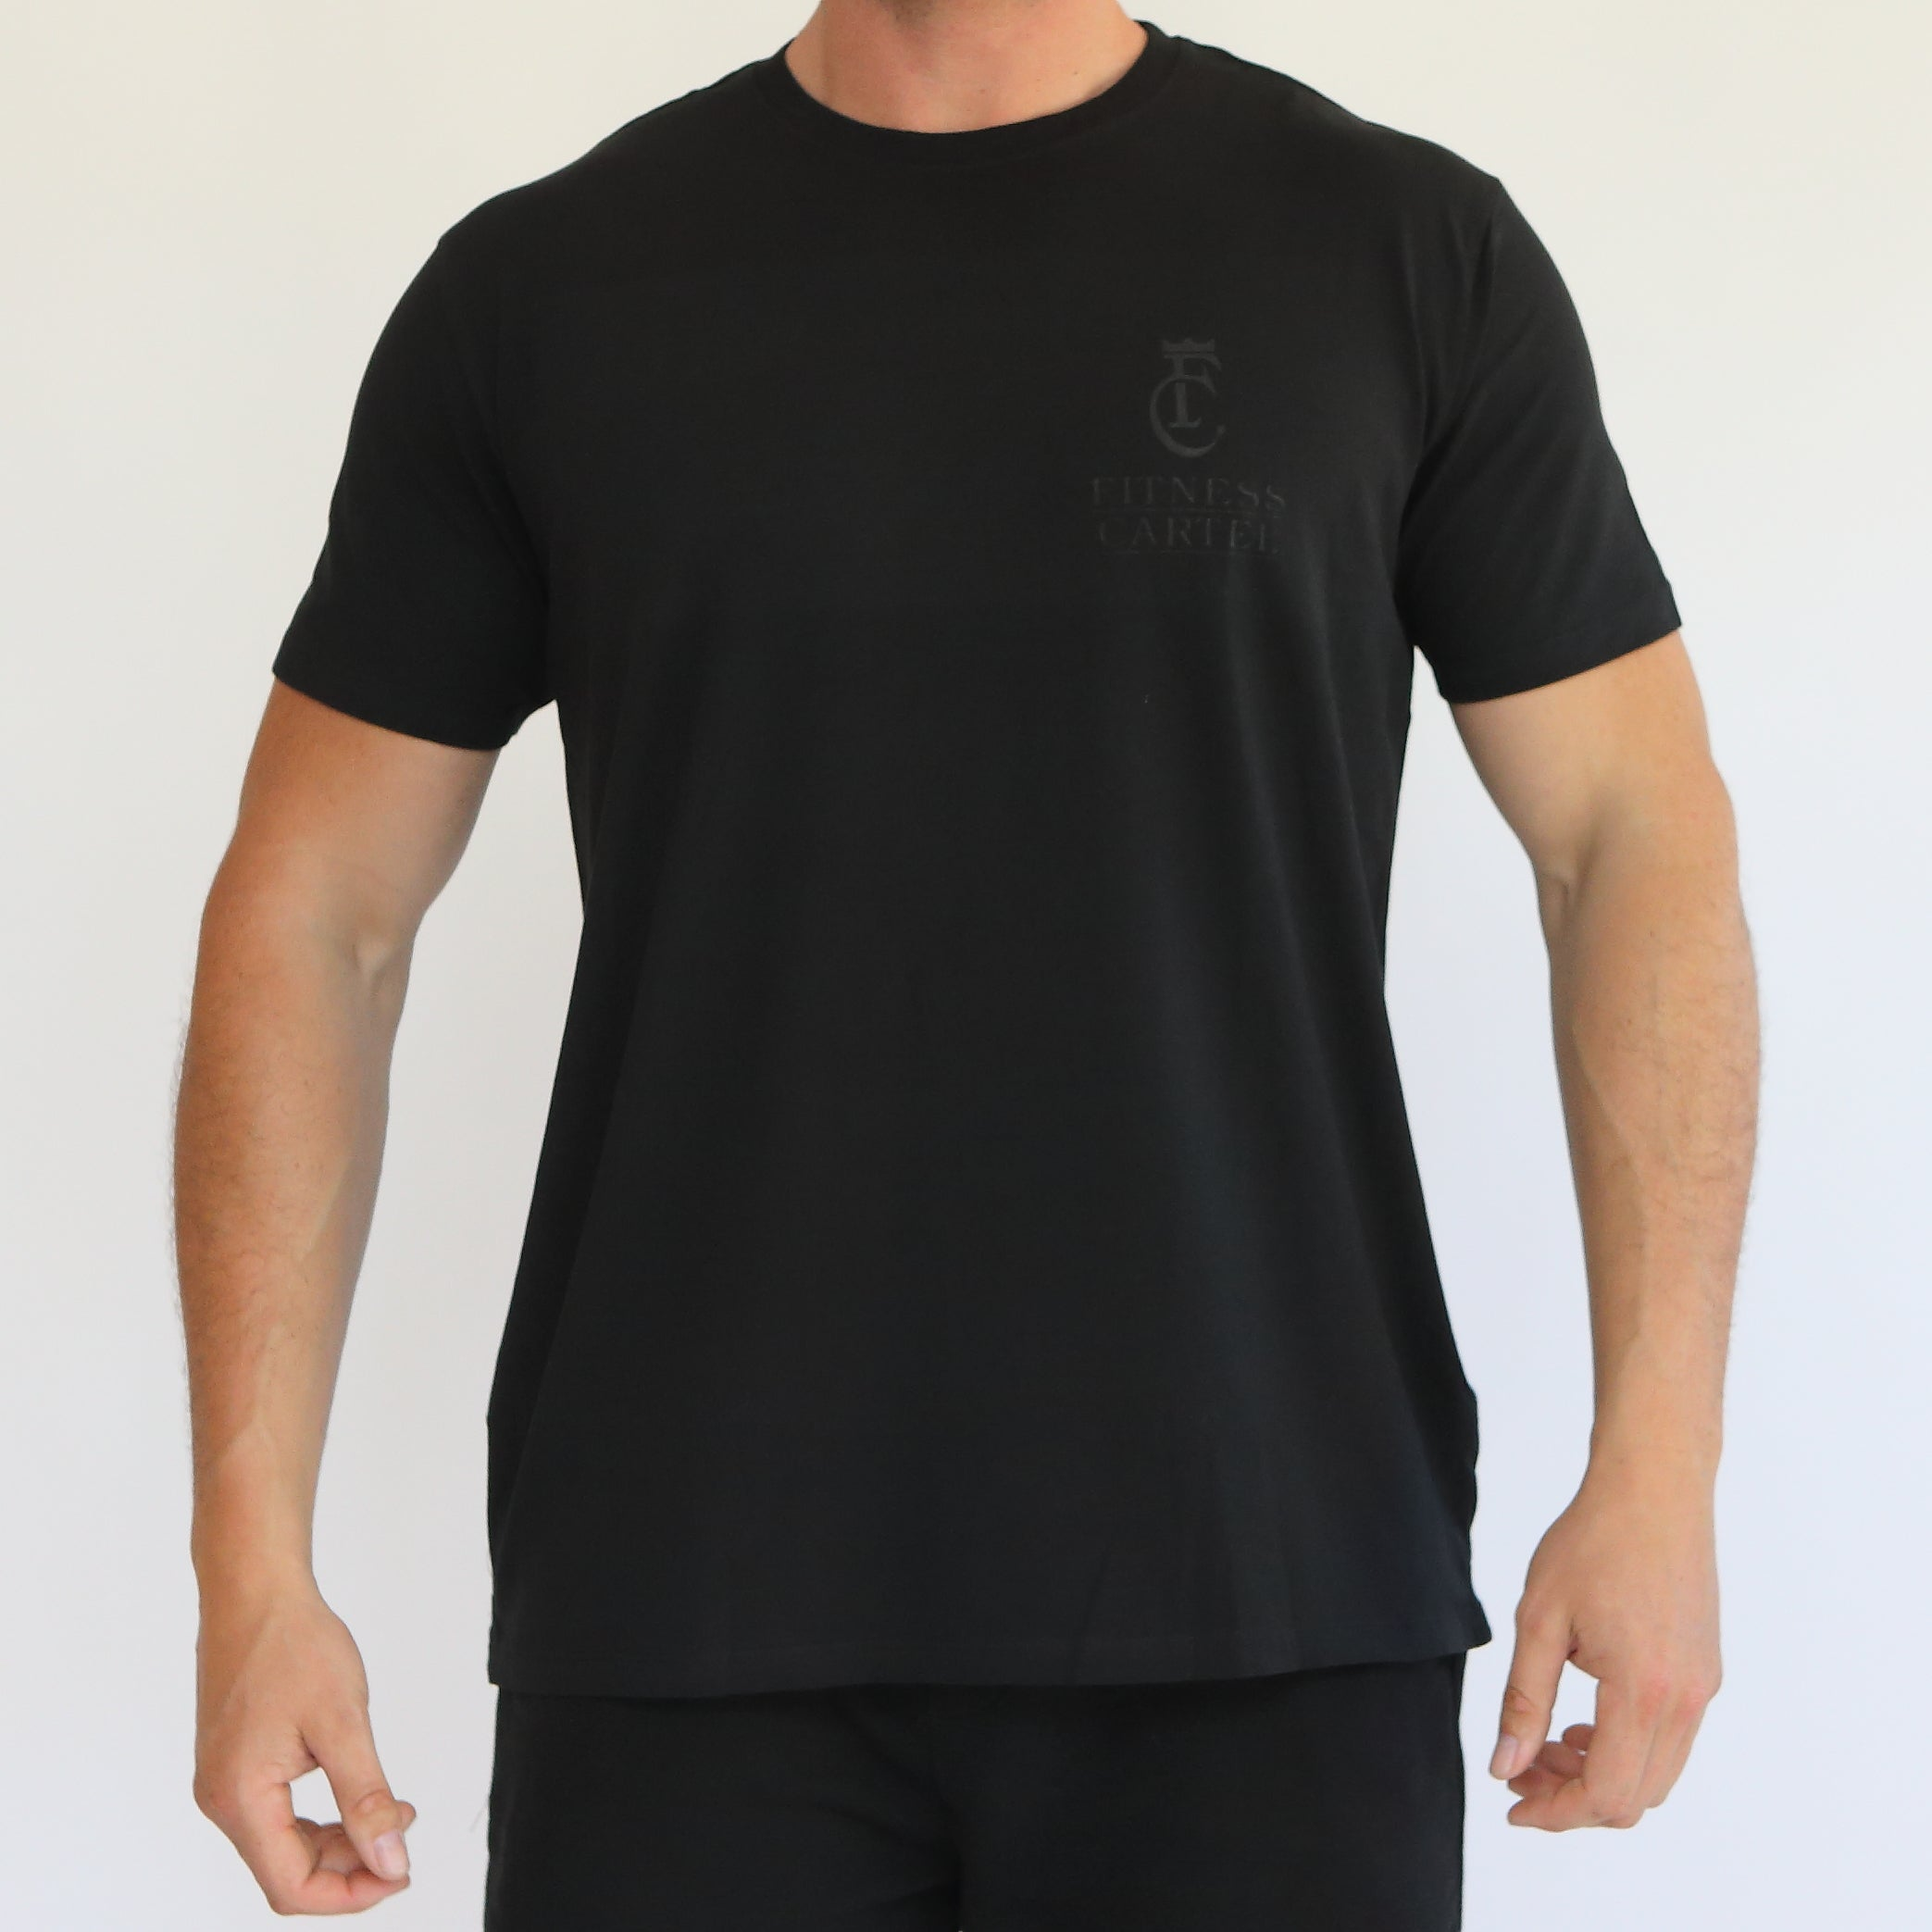 The Cartel T-Shirt - Black on Black